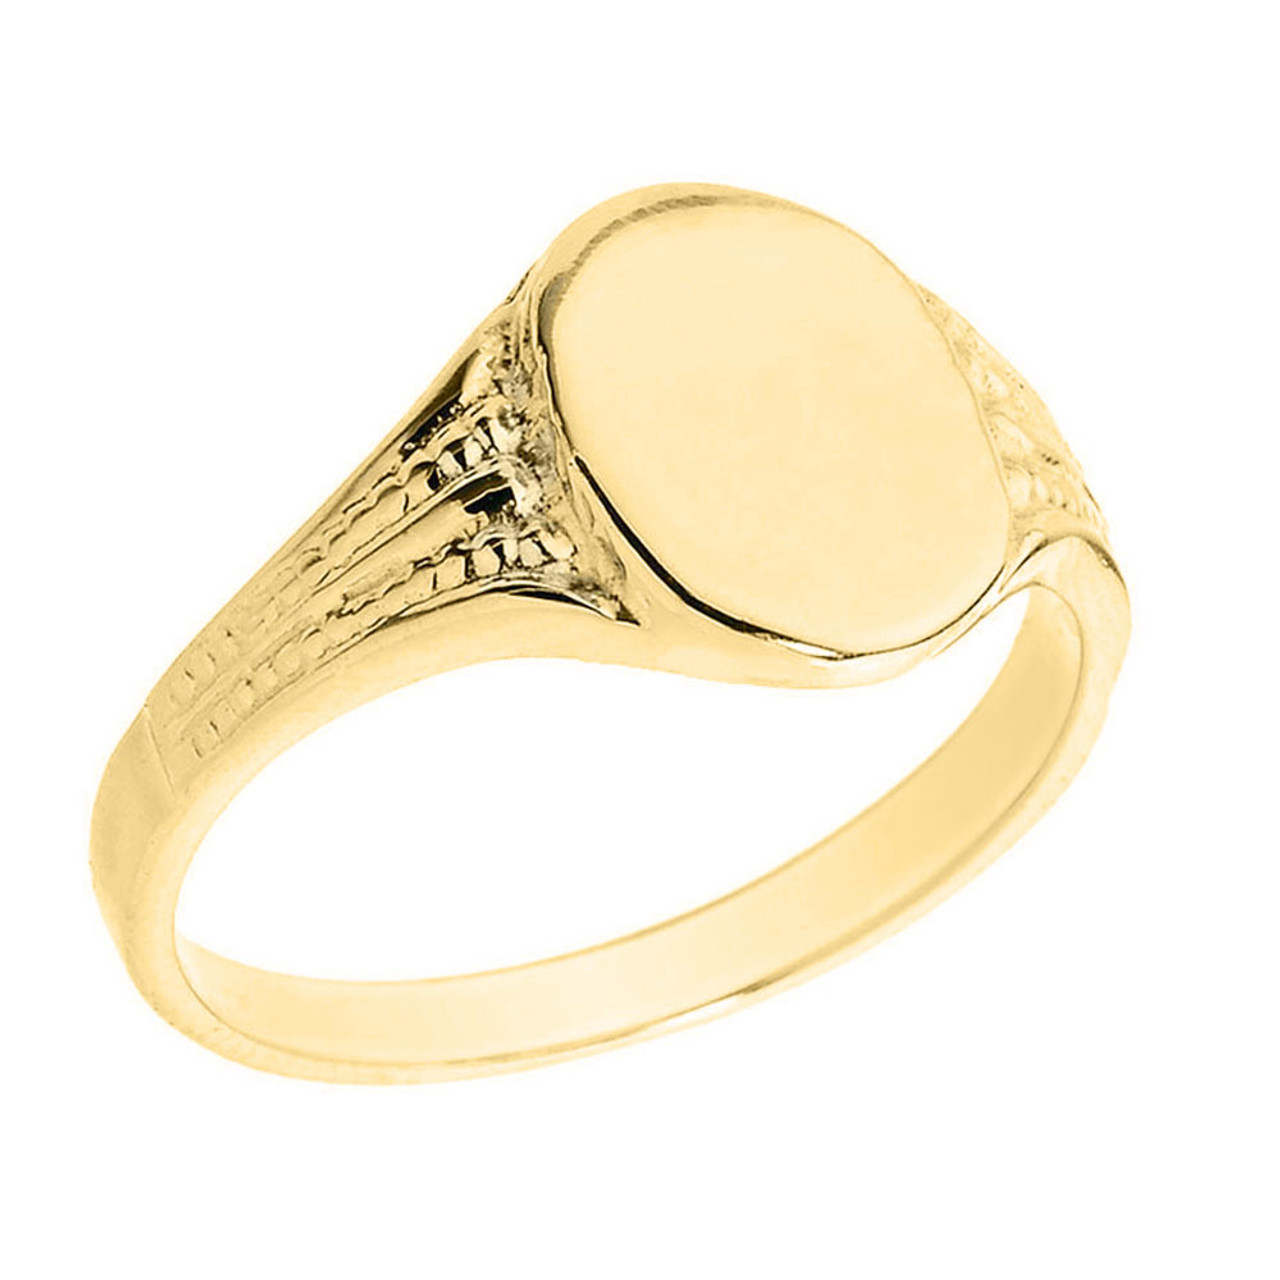 Mens 10k Yellow Gold Comfort Fit Engravable Rectangular Signet Ring